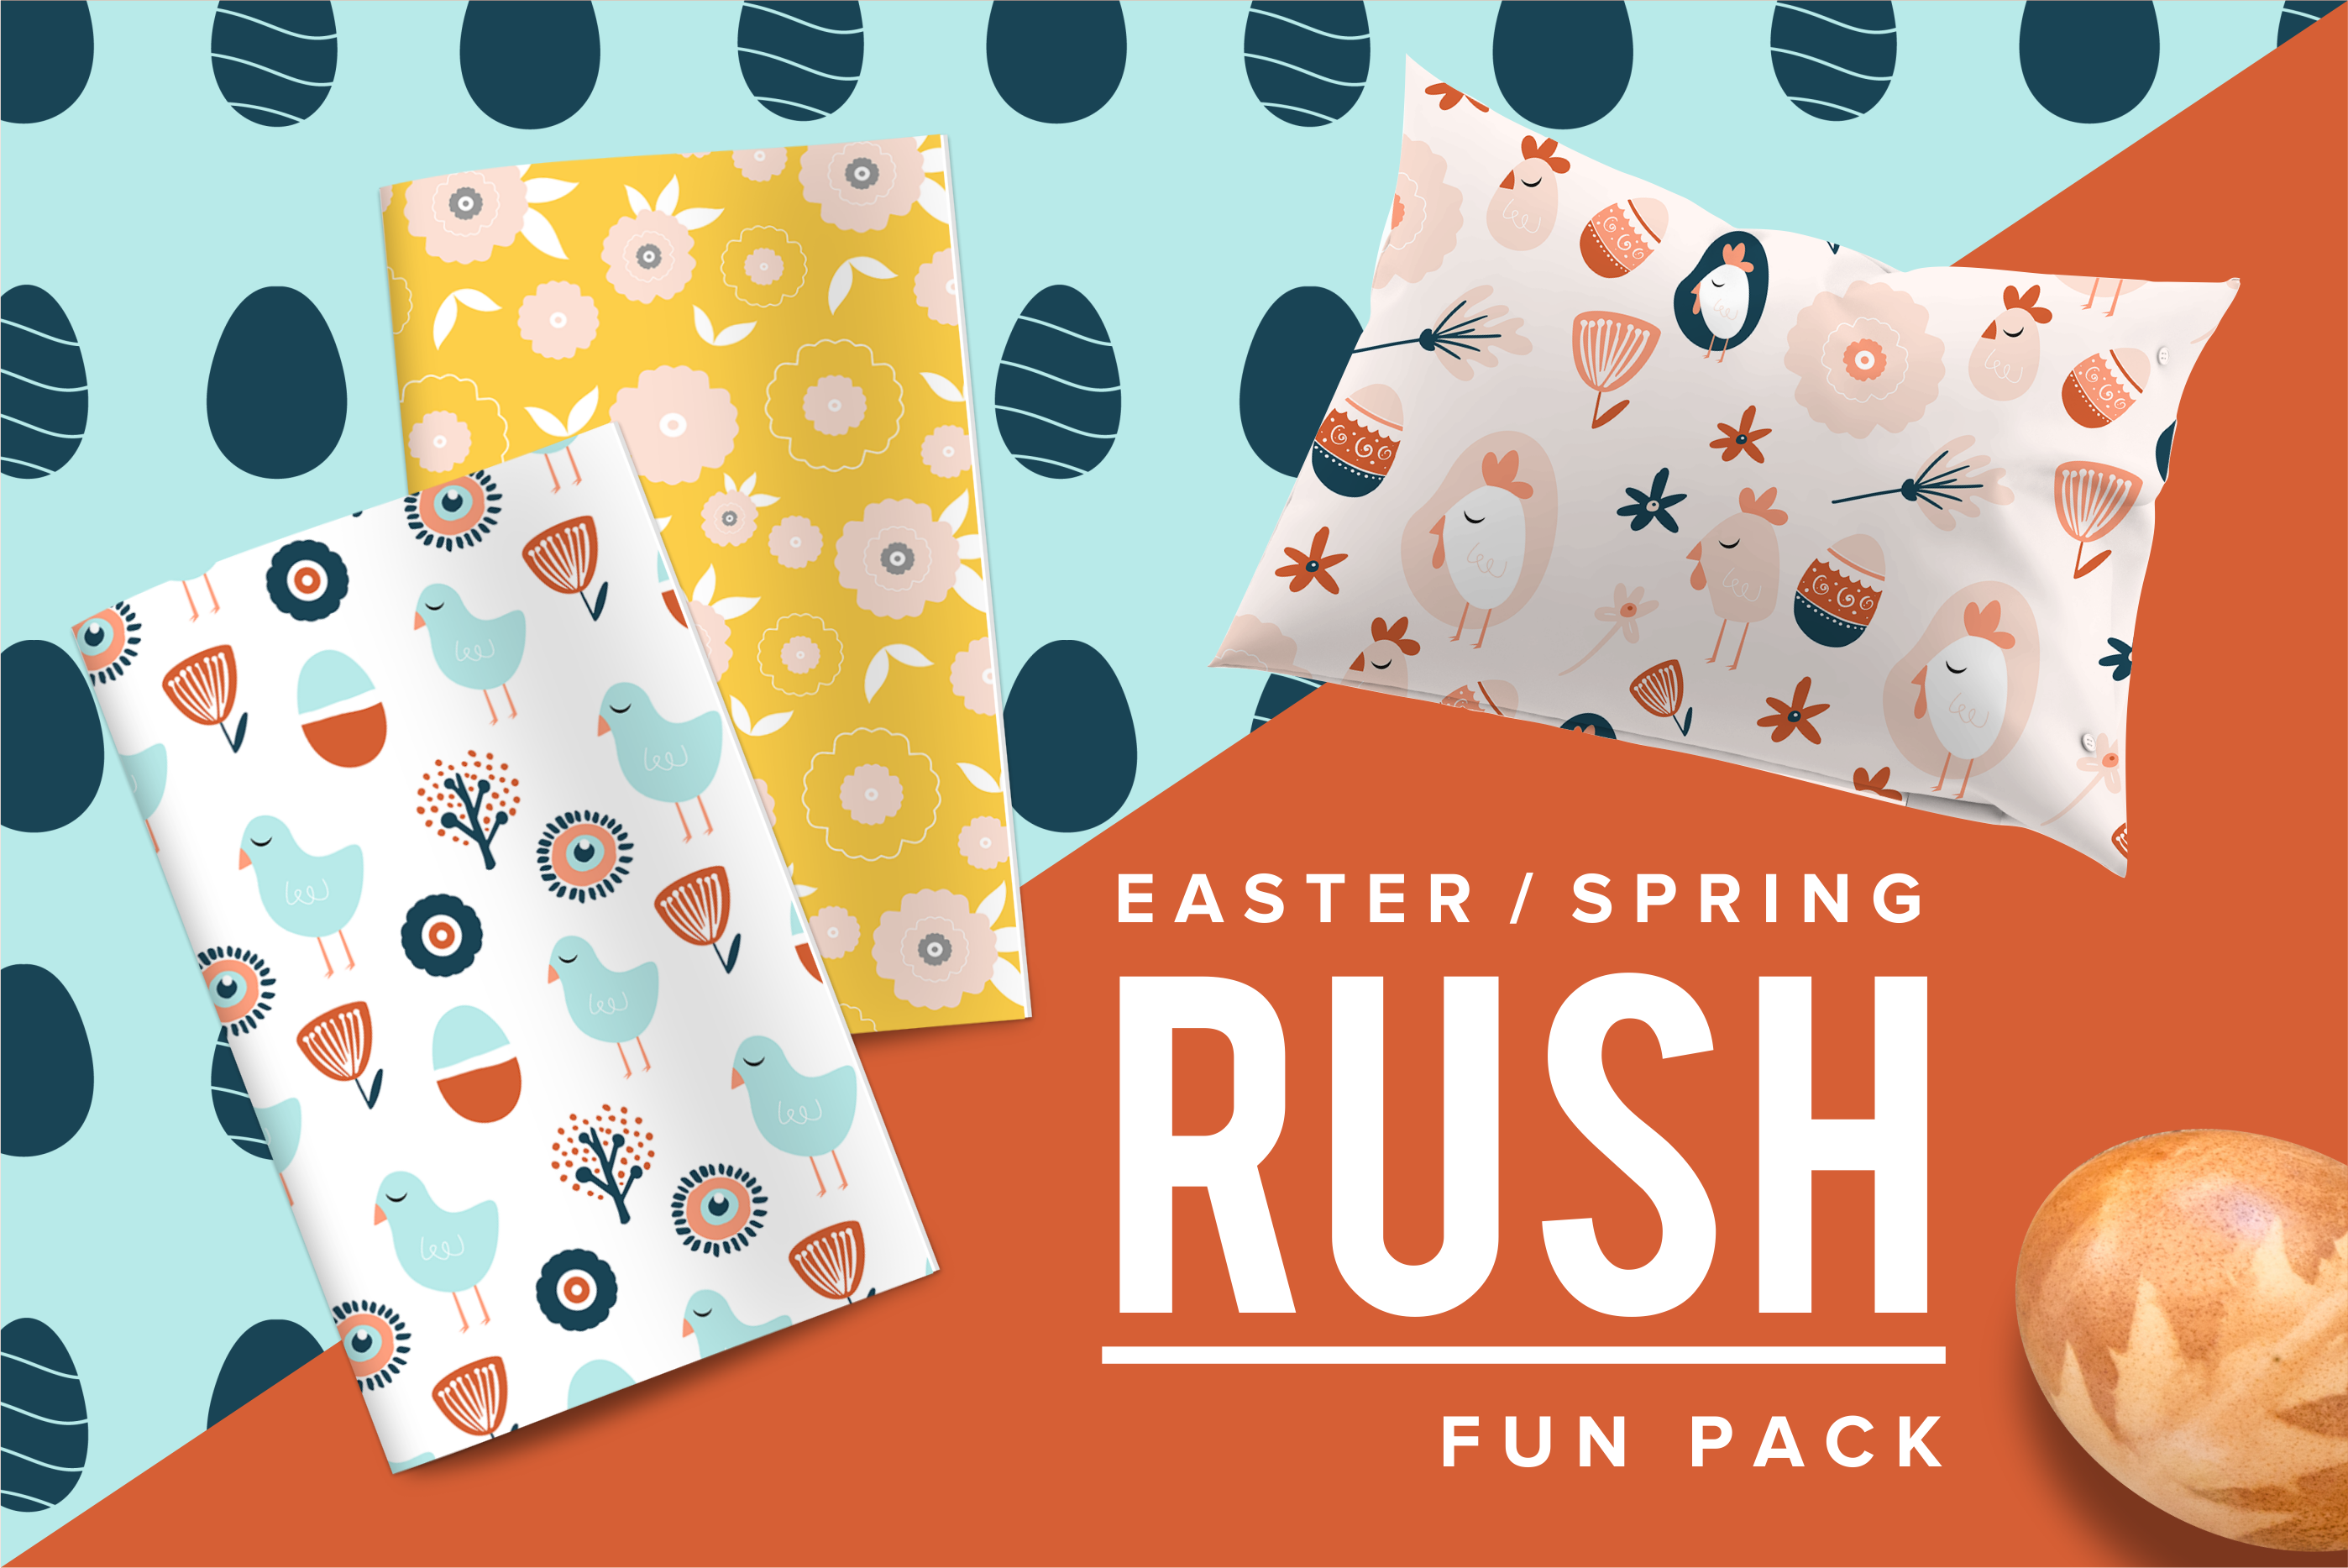 Easter Rush Fun Pack Graphic By Spasova